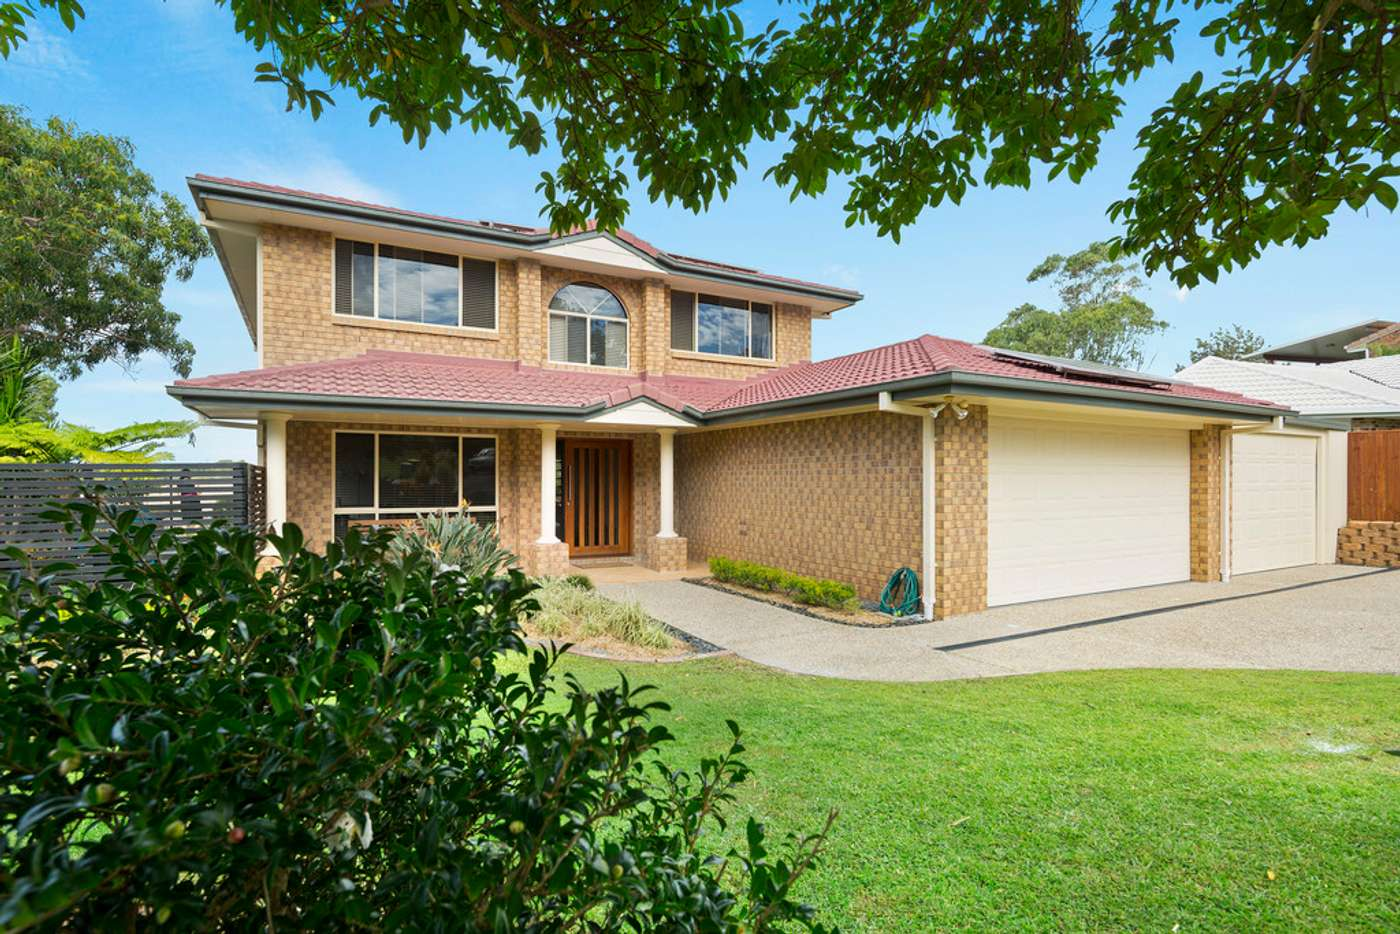 Main view of Homely house listing, 26 Perindi Chase, Currimundi QLD 4551